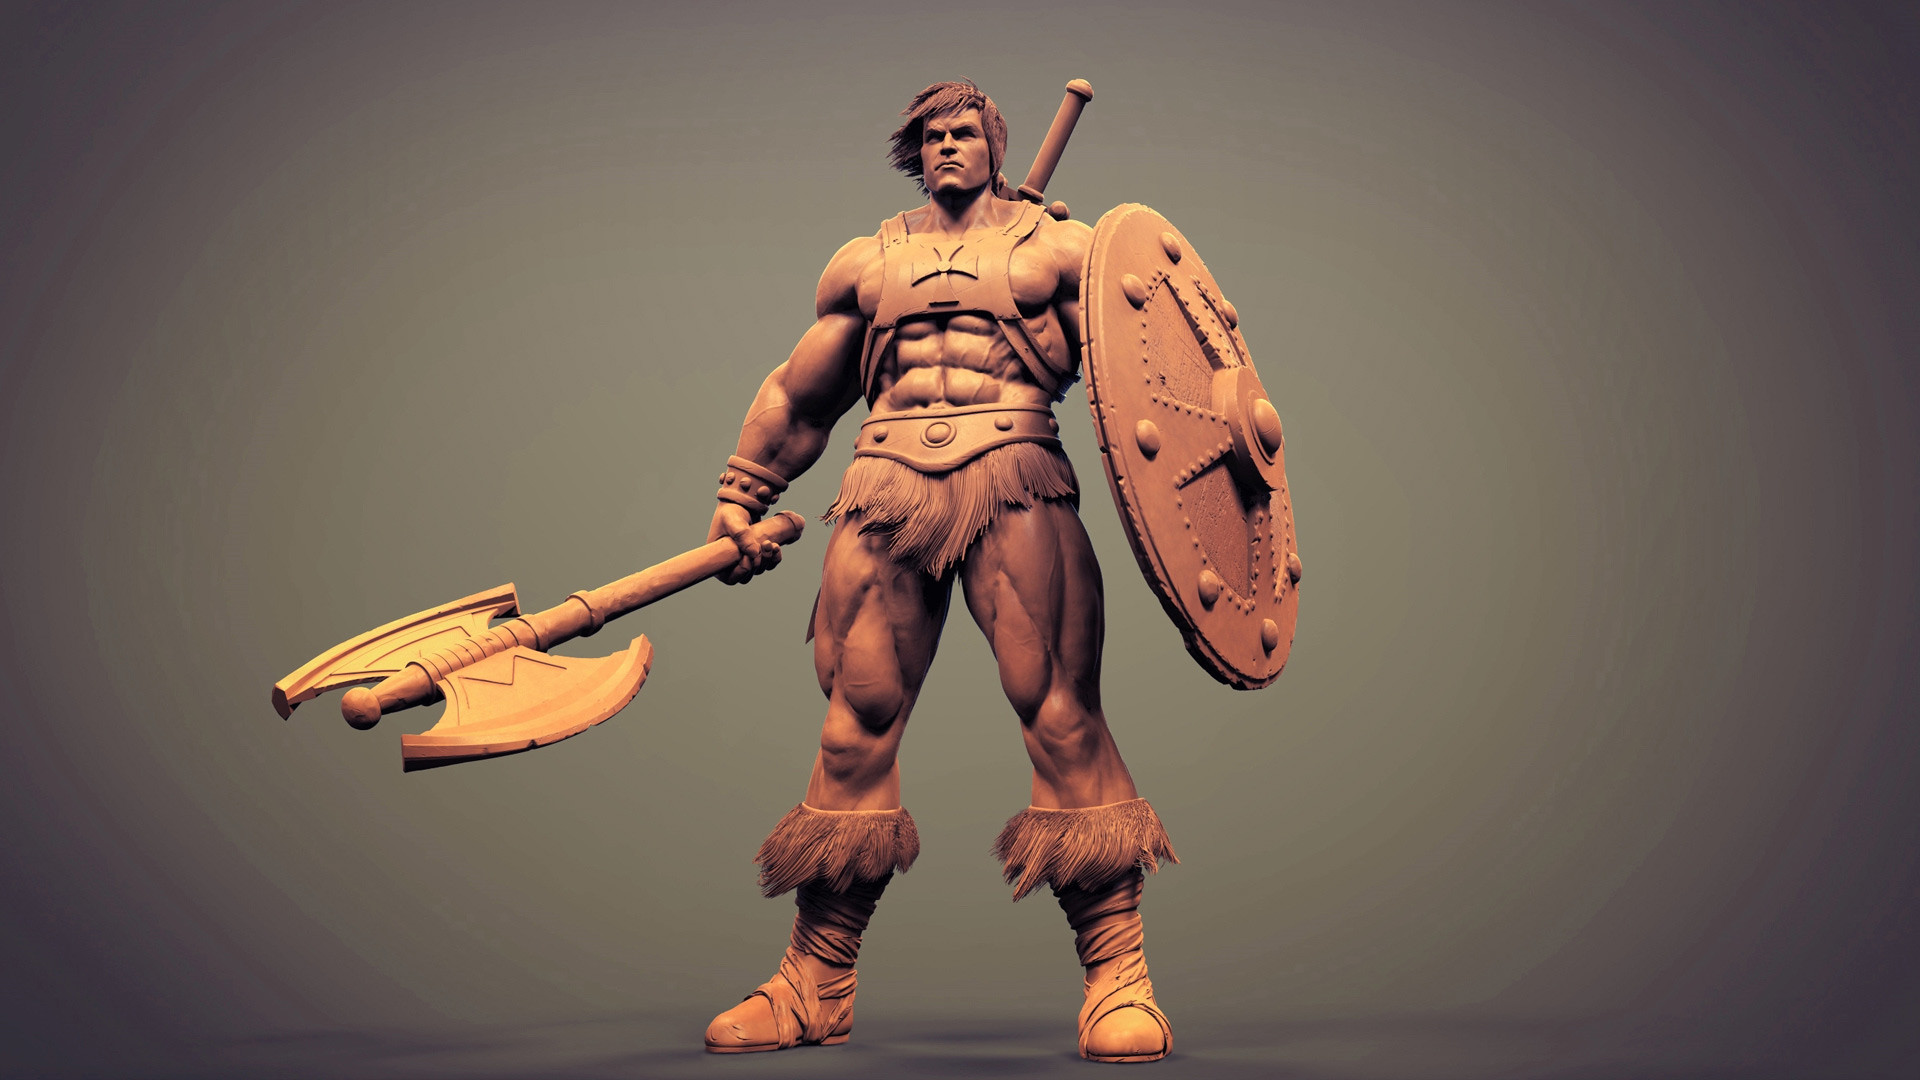 Res: 1920x1080, CGTalk - He-man toy model. , puneet pinku (3D)